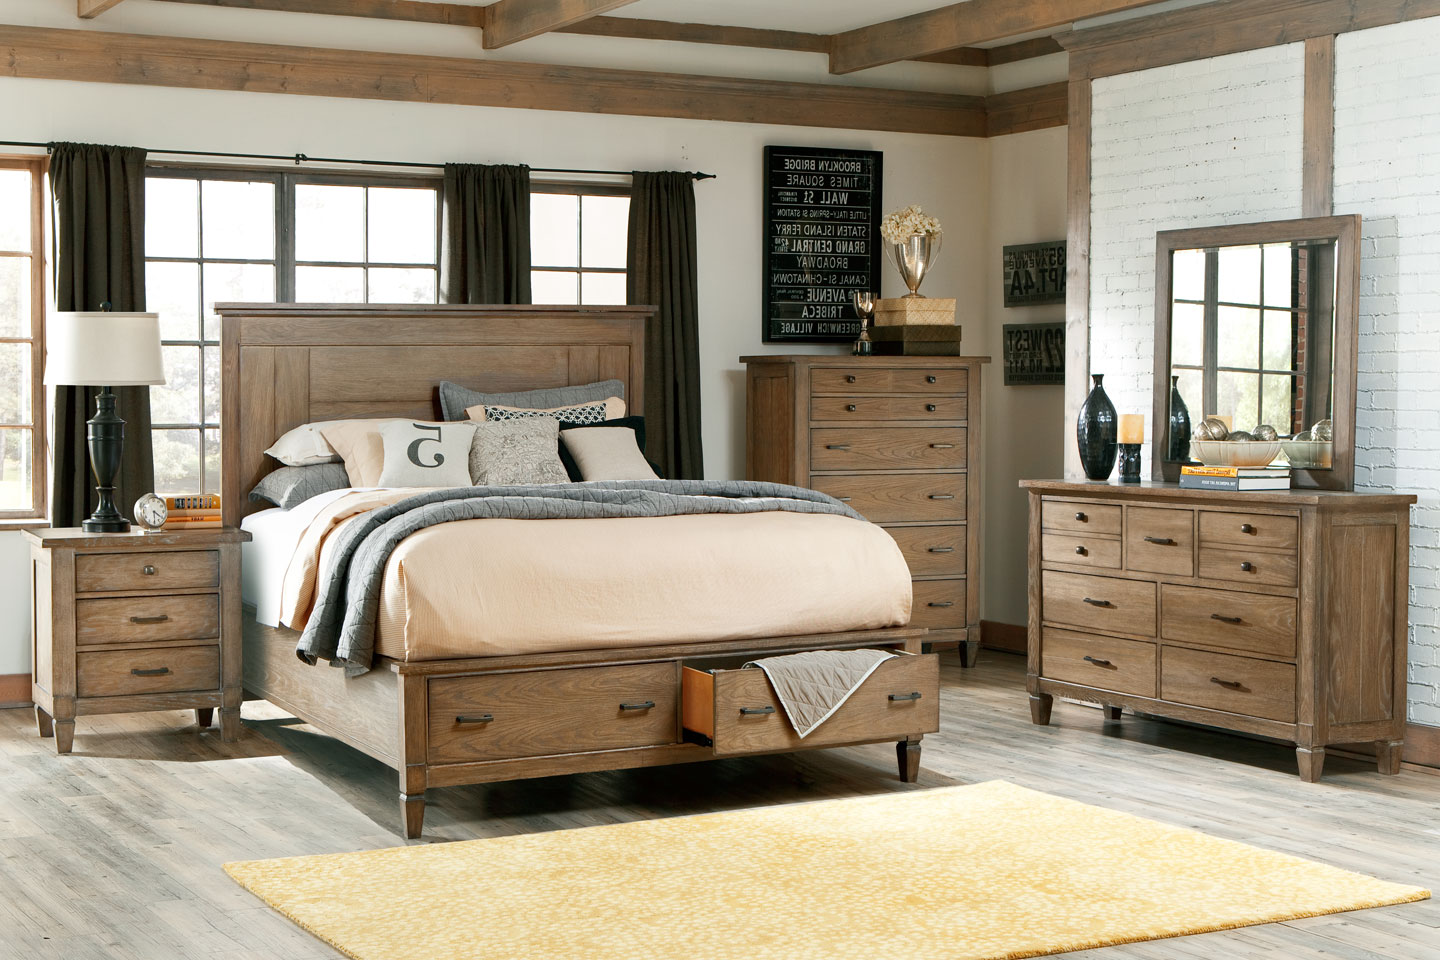 Gavin wood bedroom furniture collection wood bedroom for Furniture bedroom furniture